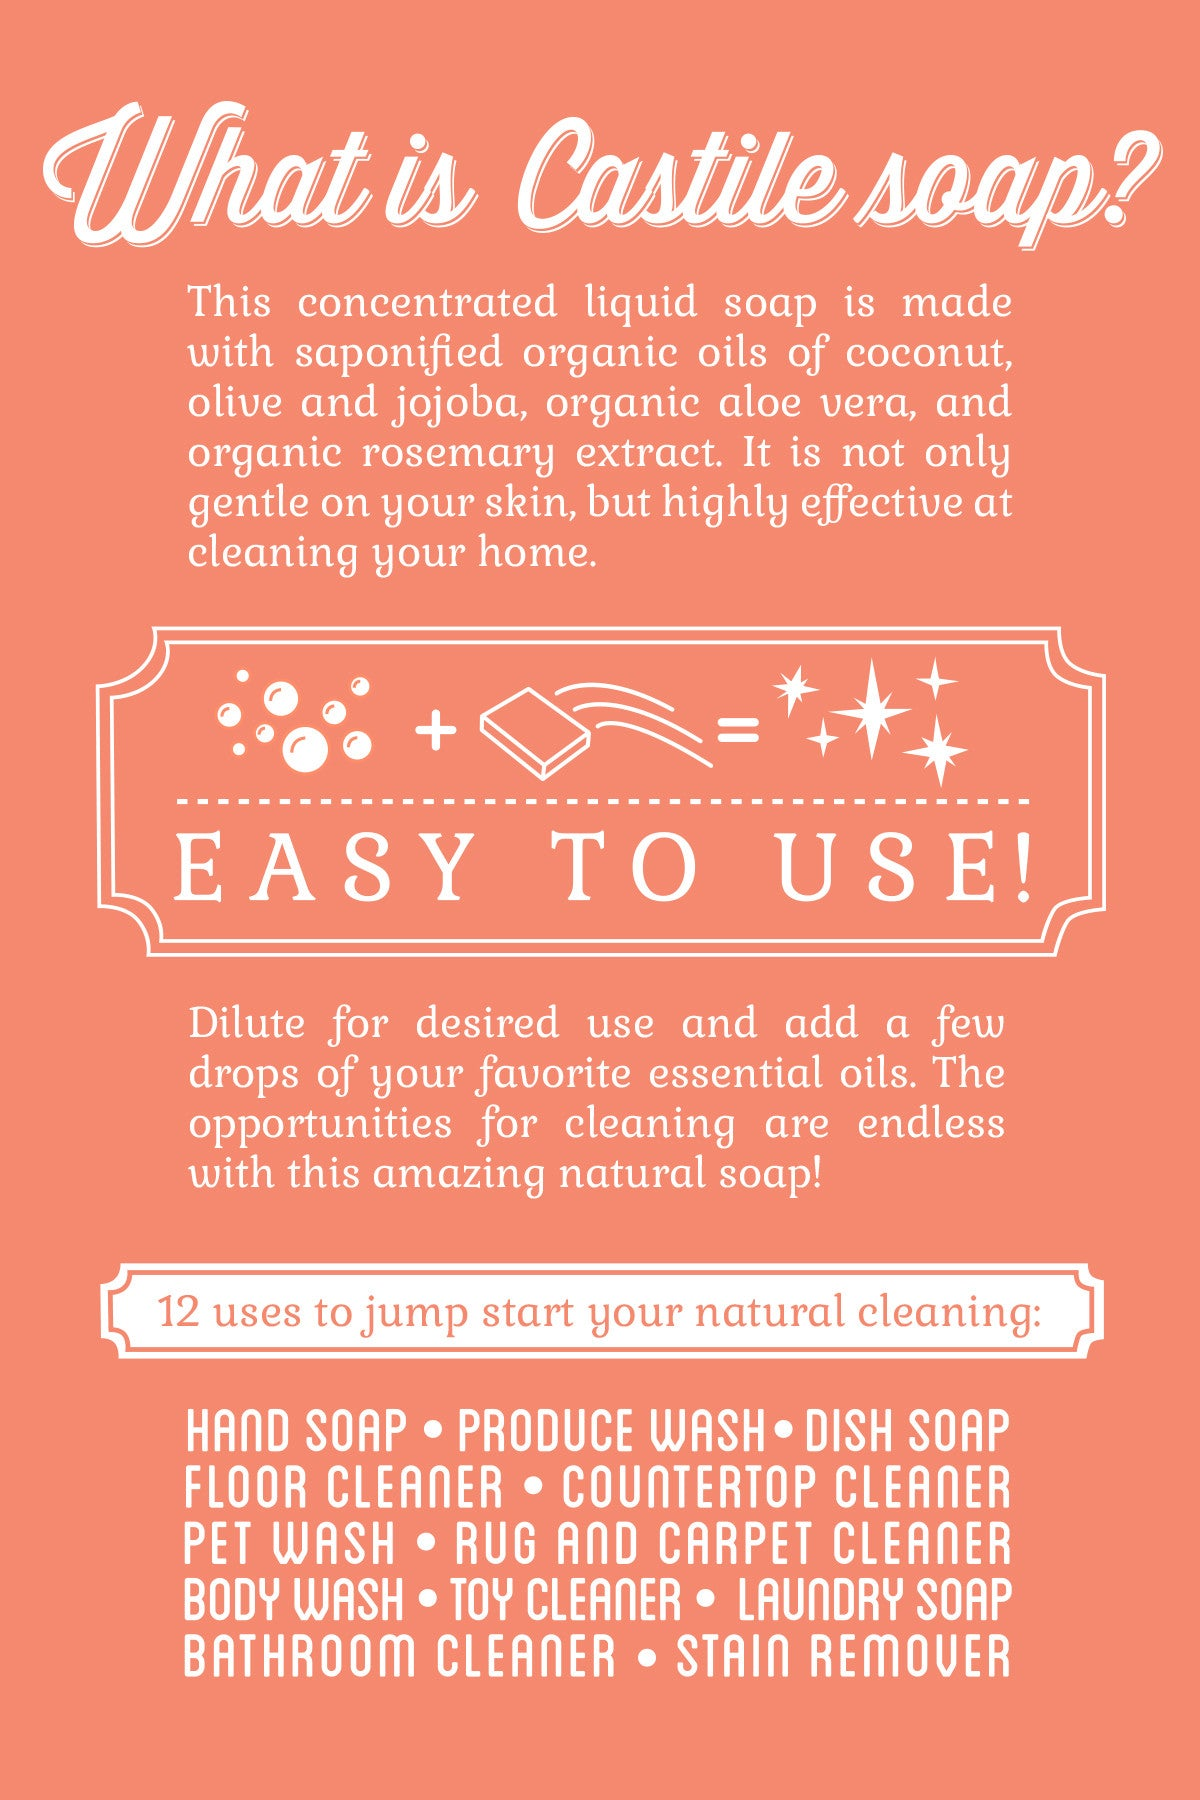 Castile soap benefits